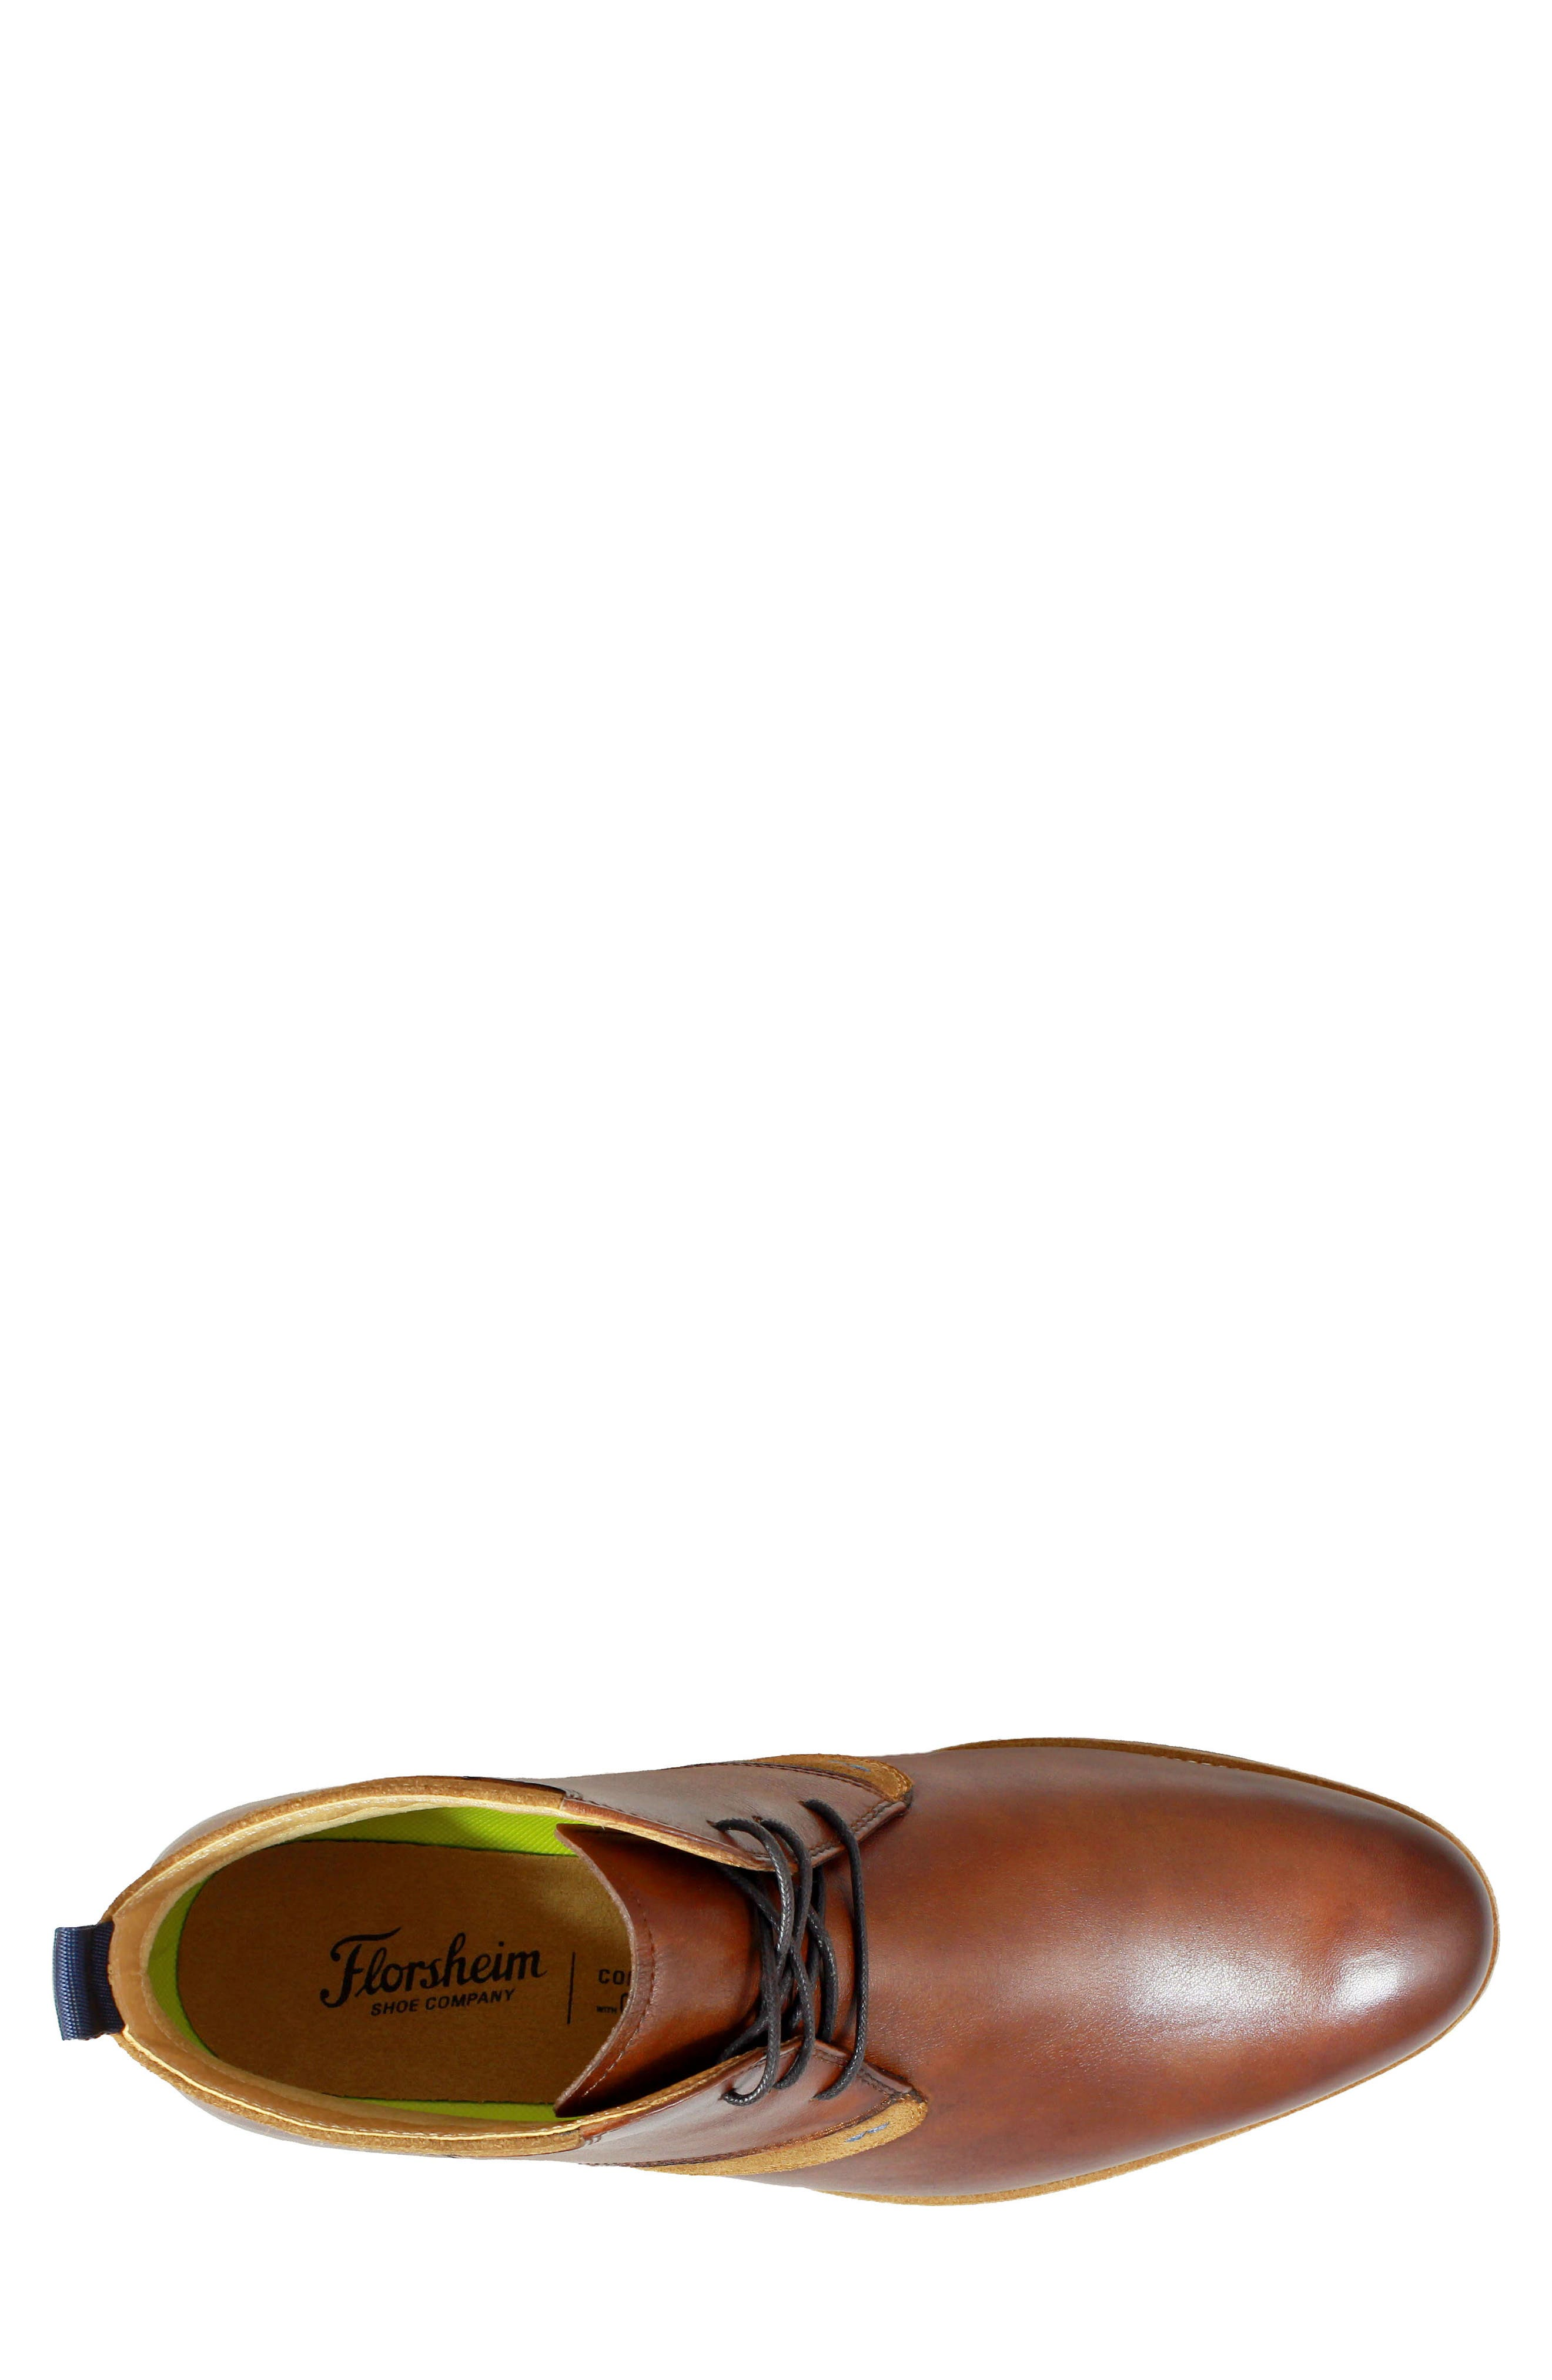 FLORSHEIM, Uptown Chukka Boot, Alternate thumbnail 5, color, COGNAC LEATHER